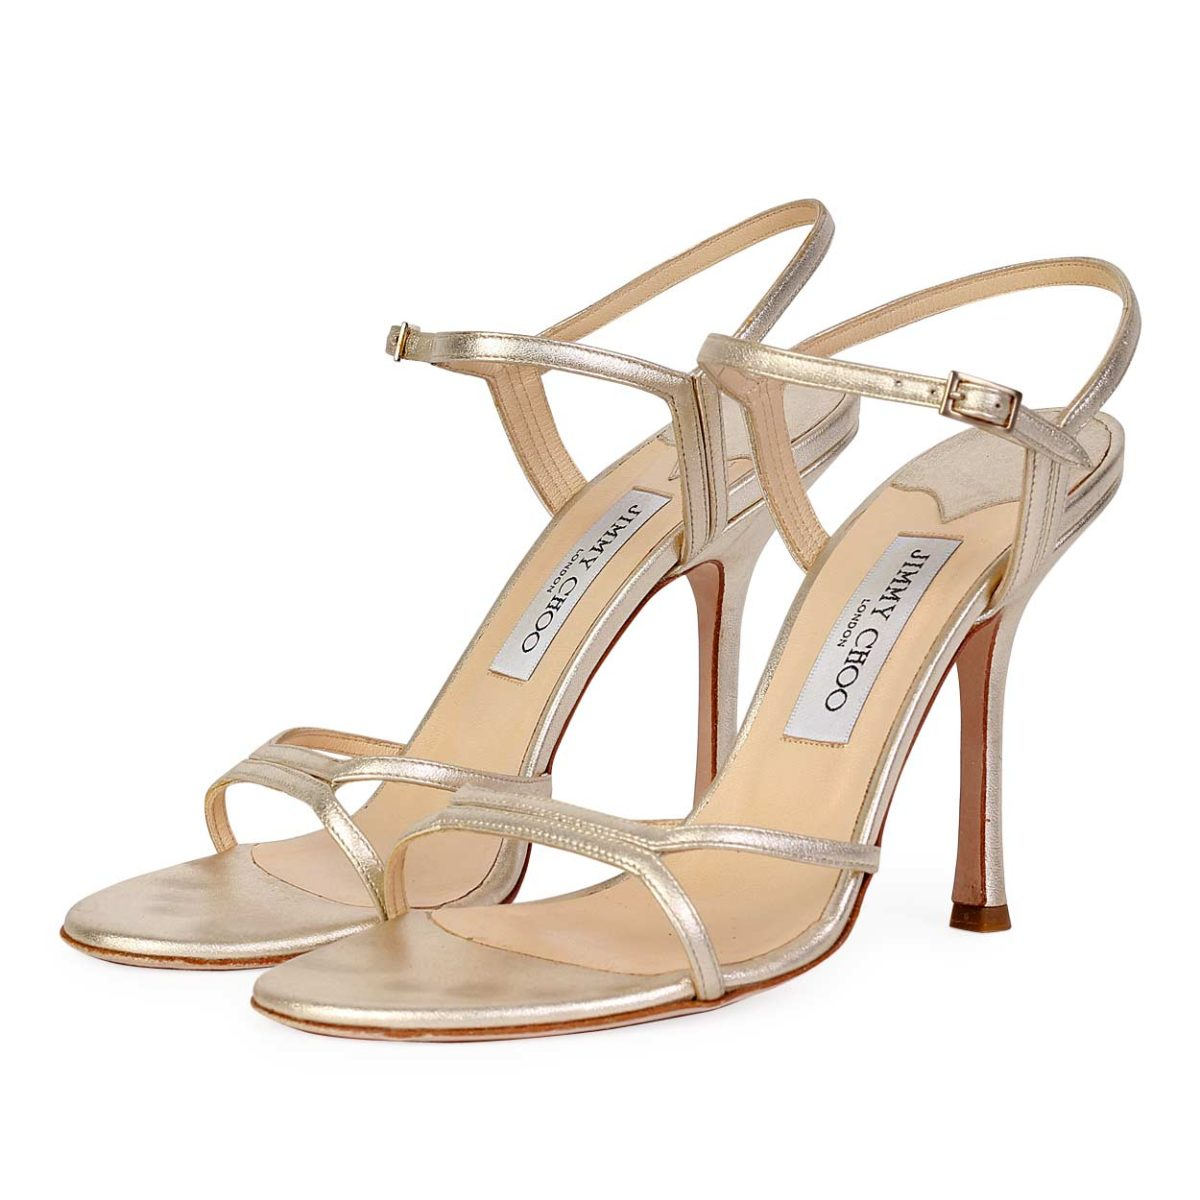 93200fdc565 JIMMY CHOO Gold Nappa Strappy Sandals - S  40 (6.5)